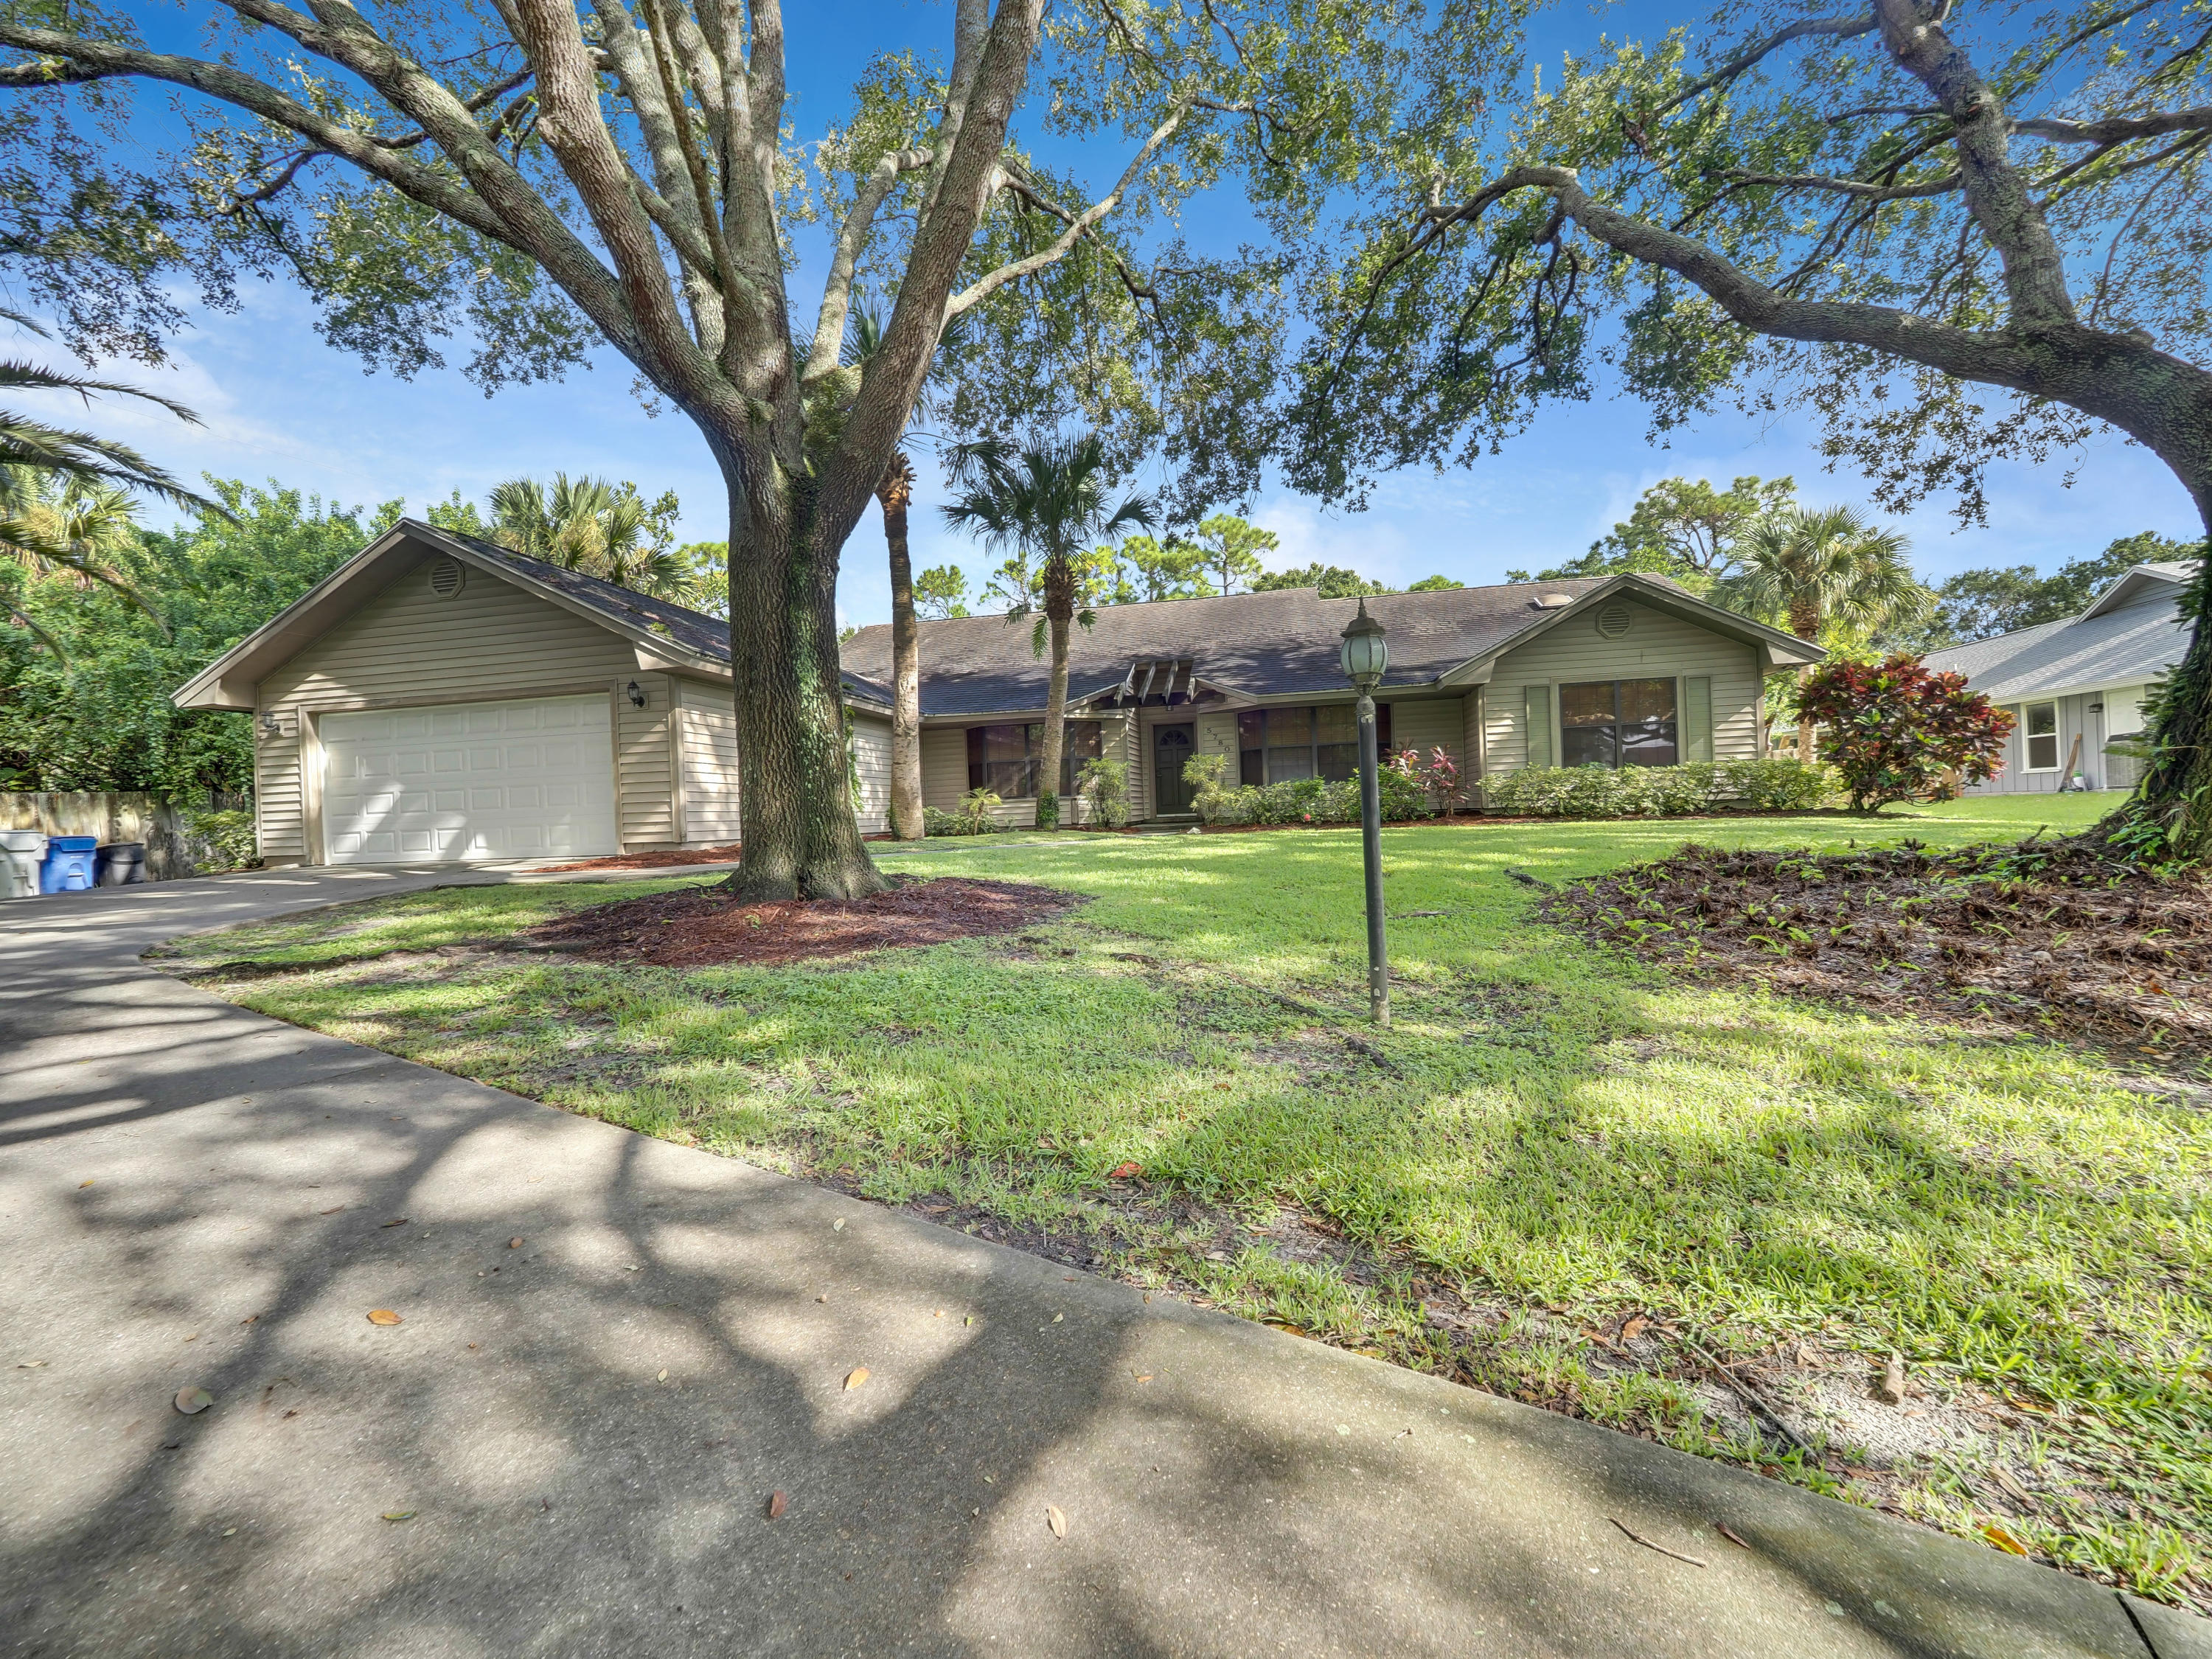 5780 36TH LANE, Vero Beach, Florida 32966, 3 Bedrooms Bedrooms, ,2 BathroomsBathrooms,Residential,For Sale,5780 36TH LANE,RX-10655372